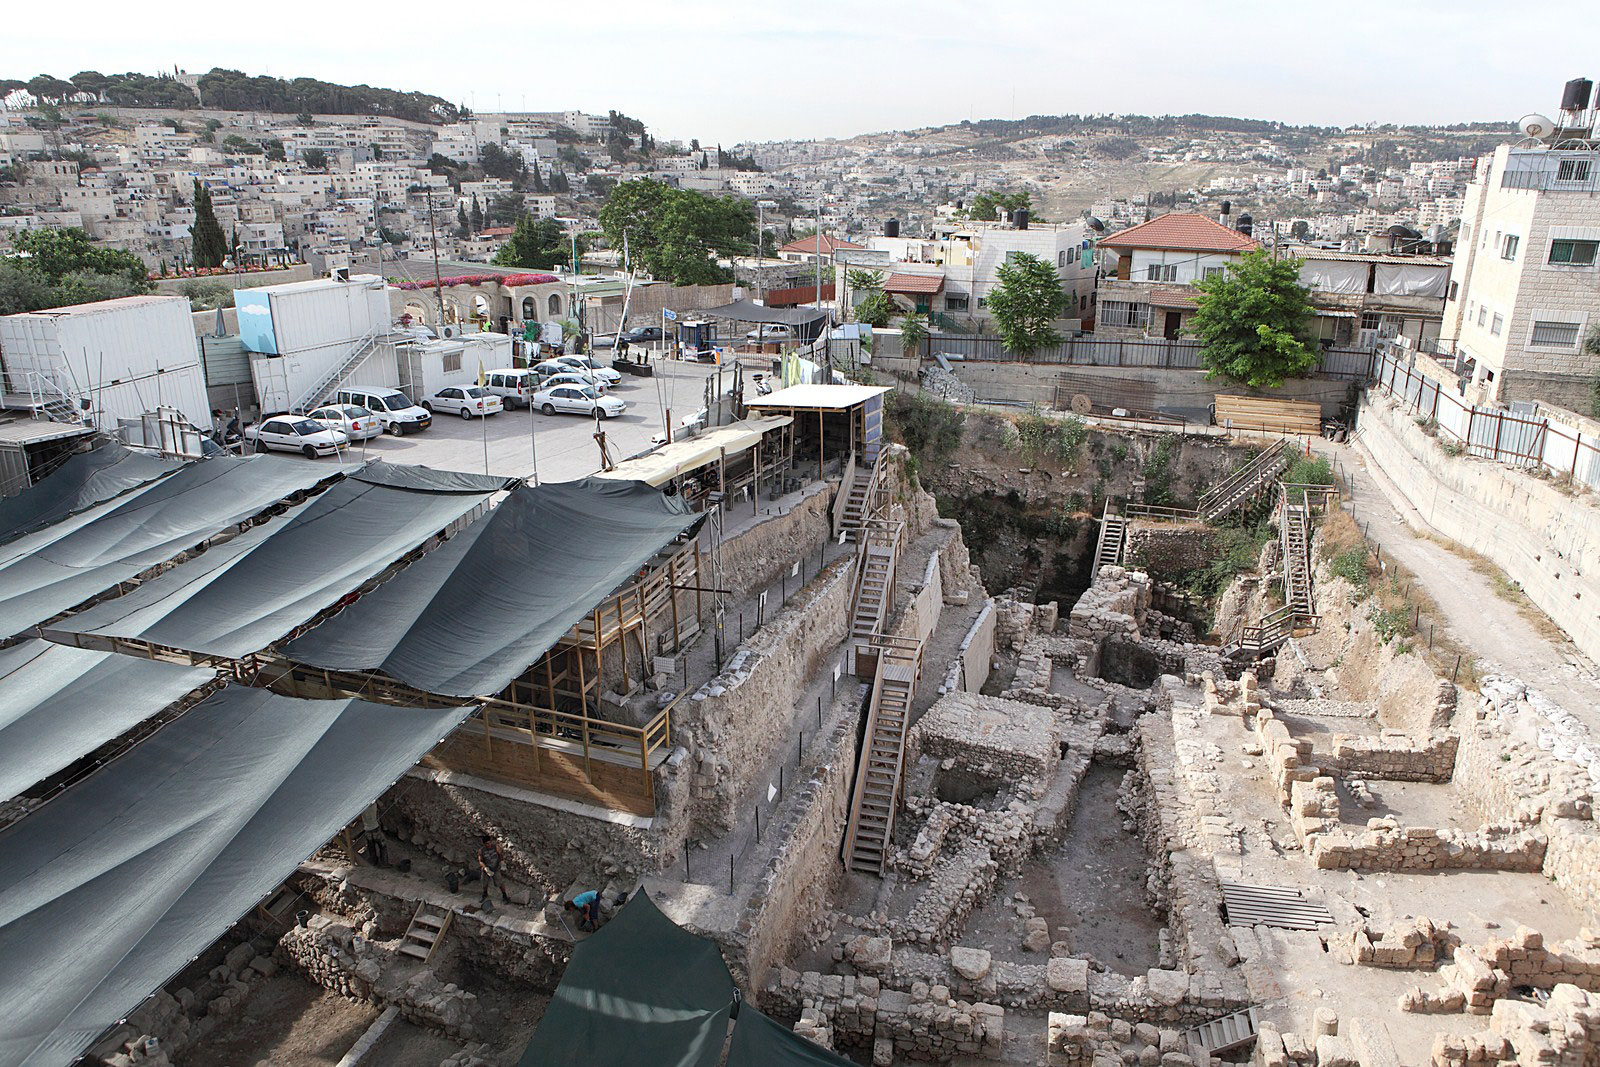 City of David project condemned by UNESCO